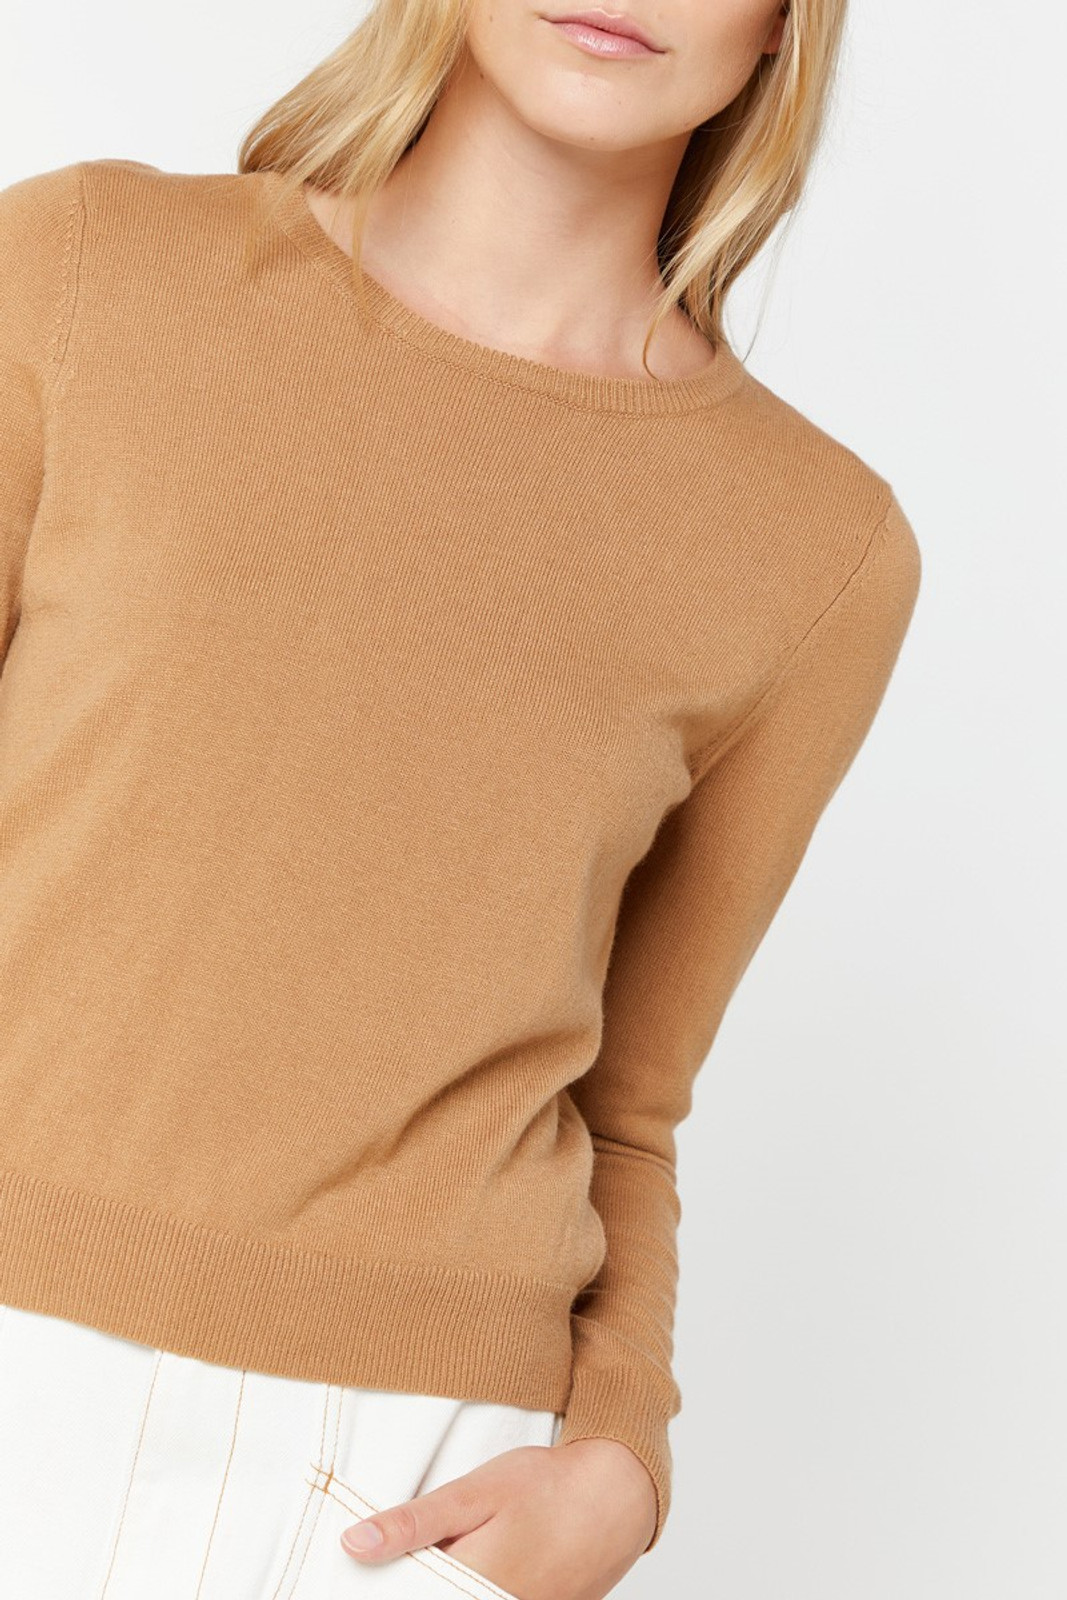 Elka Collective Gale Knit Neutrals  8